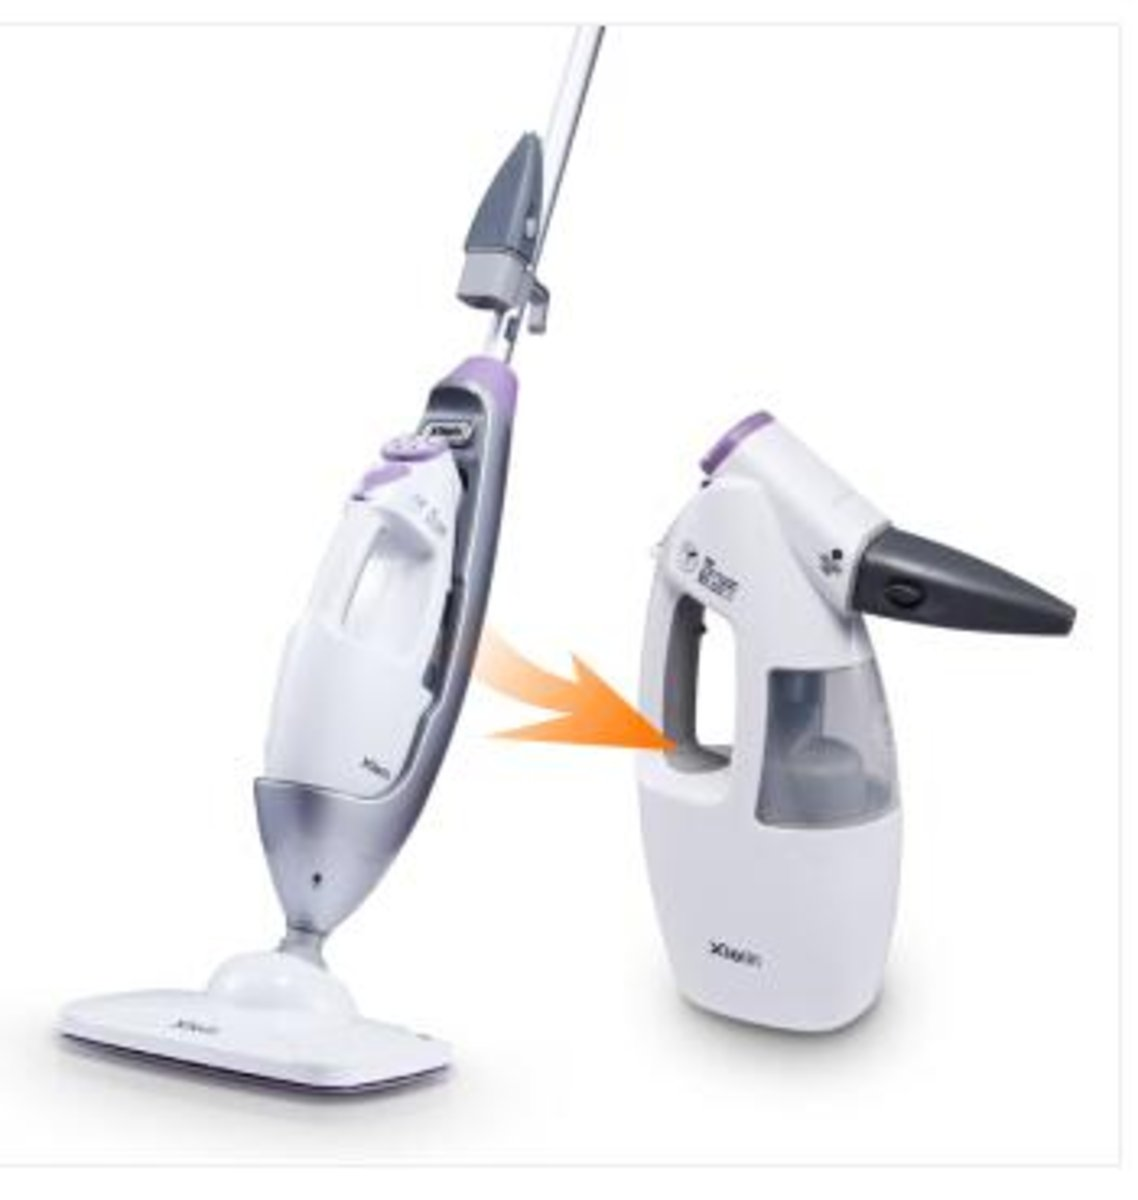 Steam Mop & Portable Steam Cleaner (2-in1 design) 7688M with cleaning parts 7688A